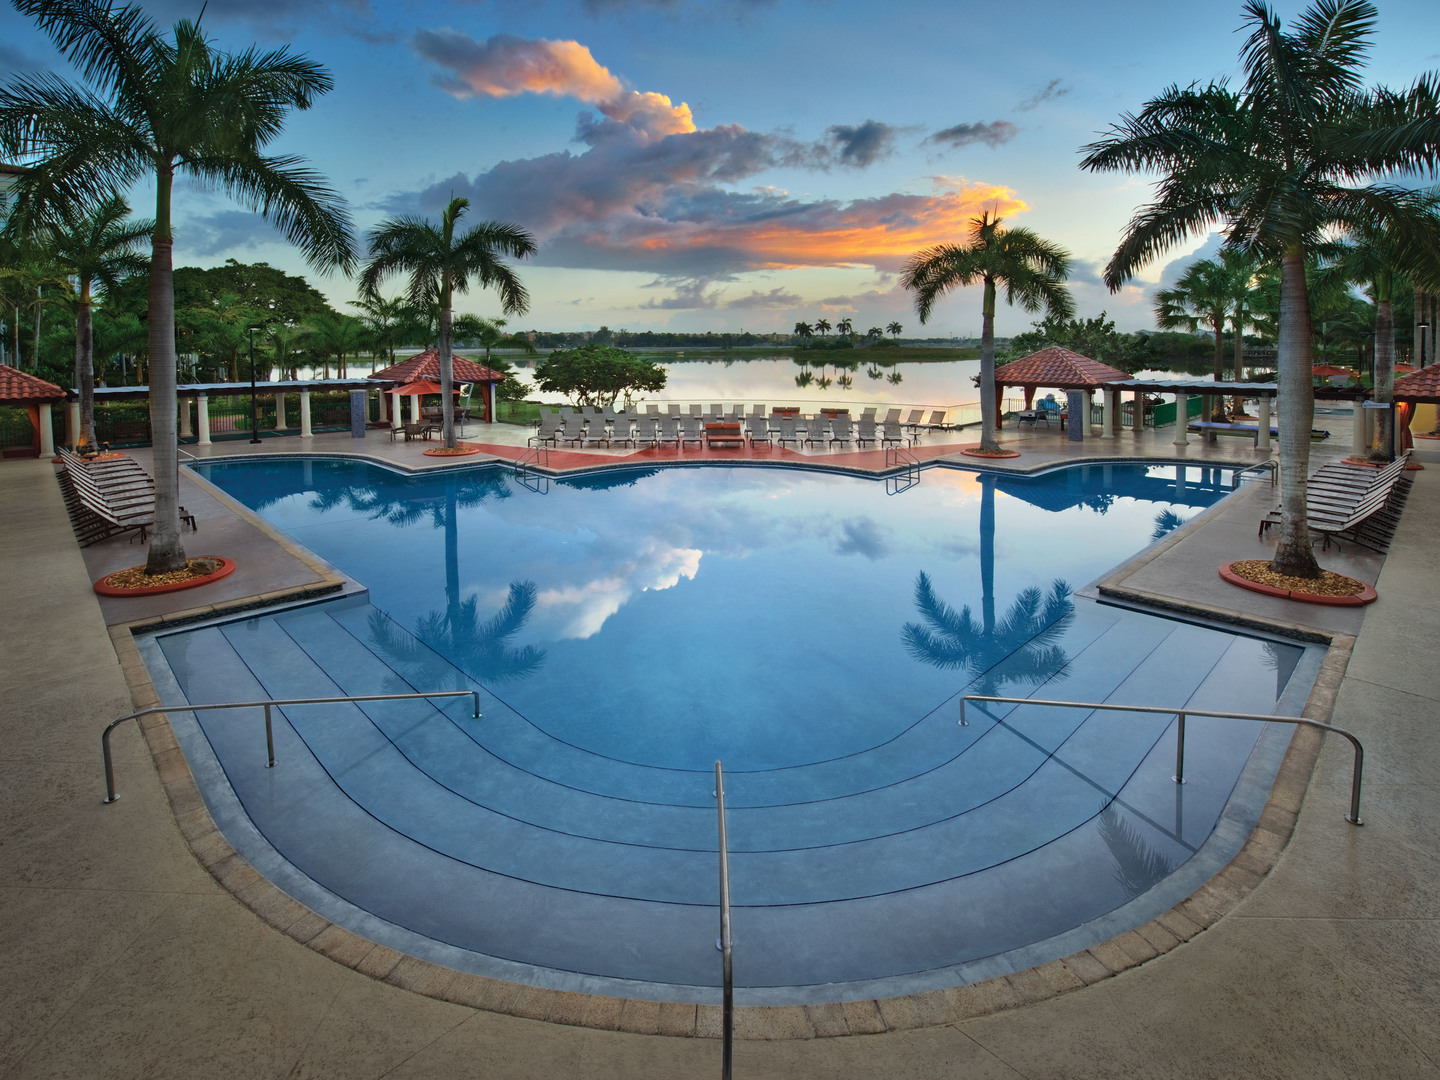 Marriott's Villas at Doral Oasis Pool. Marriott's Villas at Doral is located in Miami, Florida United States.